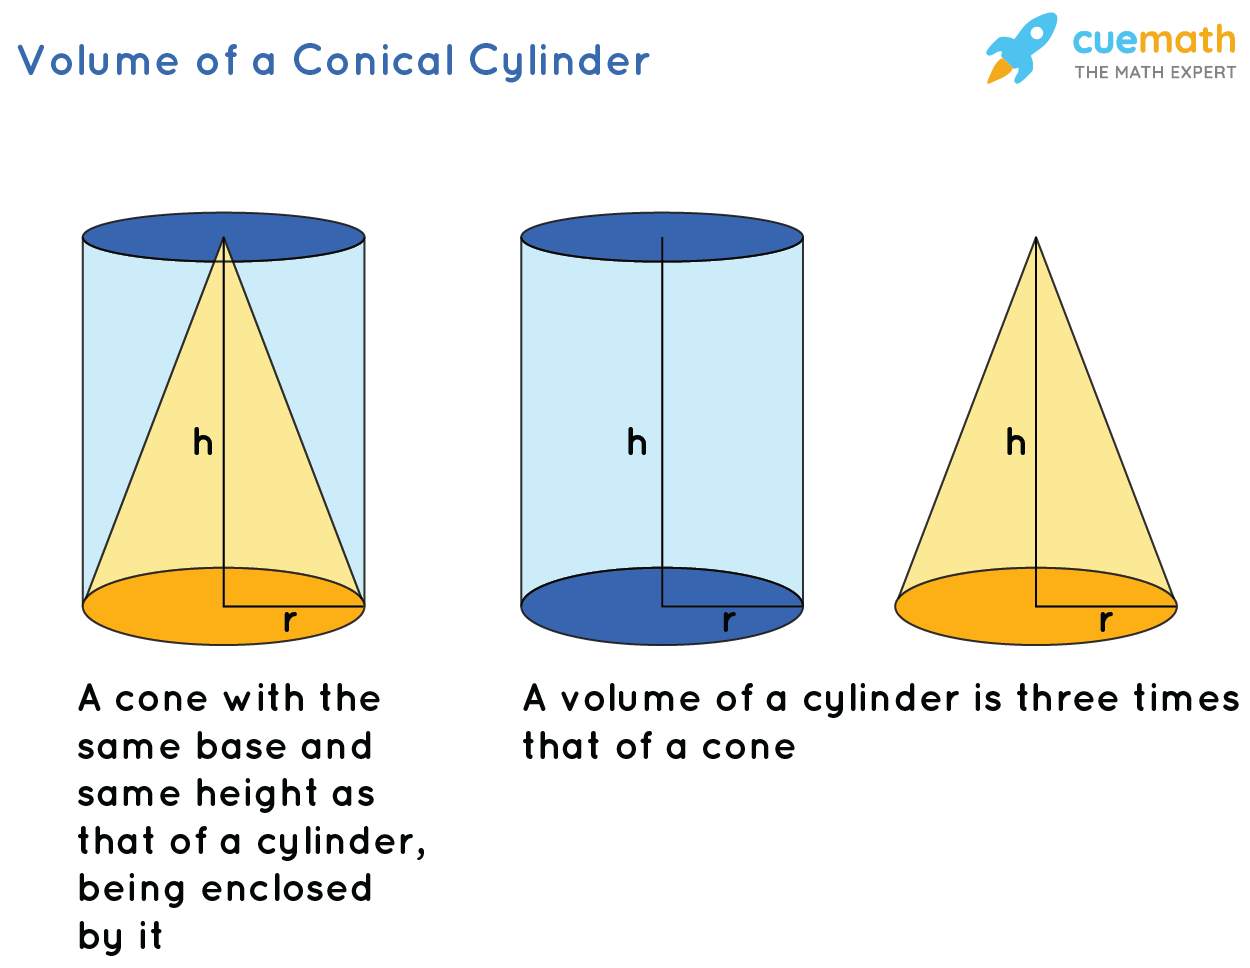 hight resolution of Volume of a conical cyinder